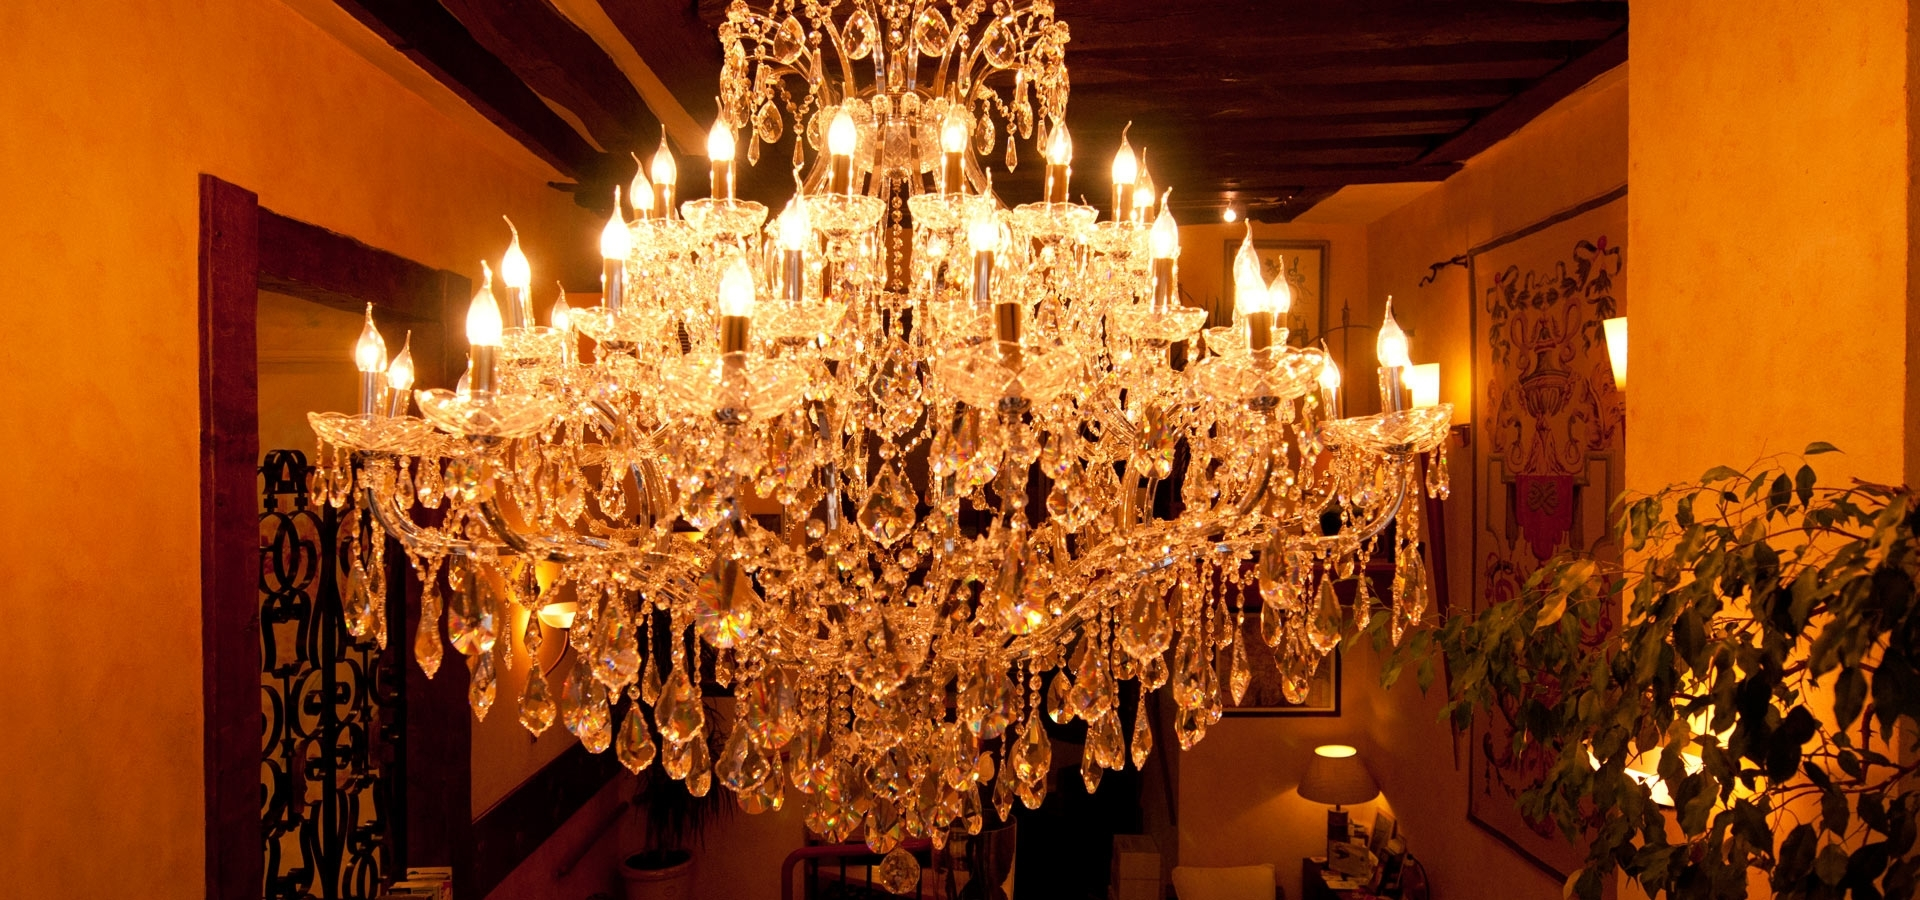 Popular Hotel Chandelier With Centrale Ecole Hotel 3* › Hotel Ecole Centrale (View 14 of 20)